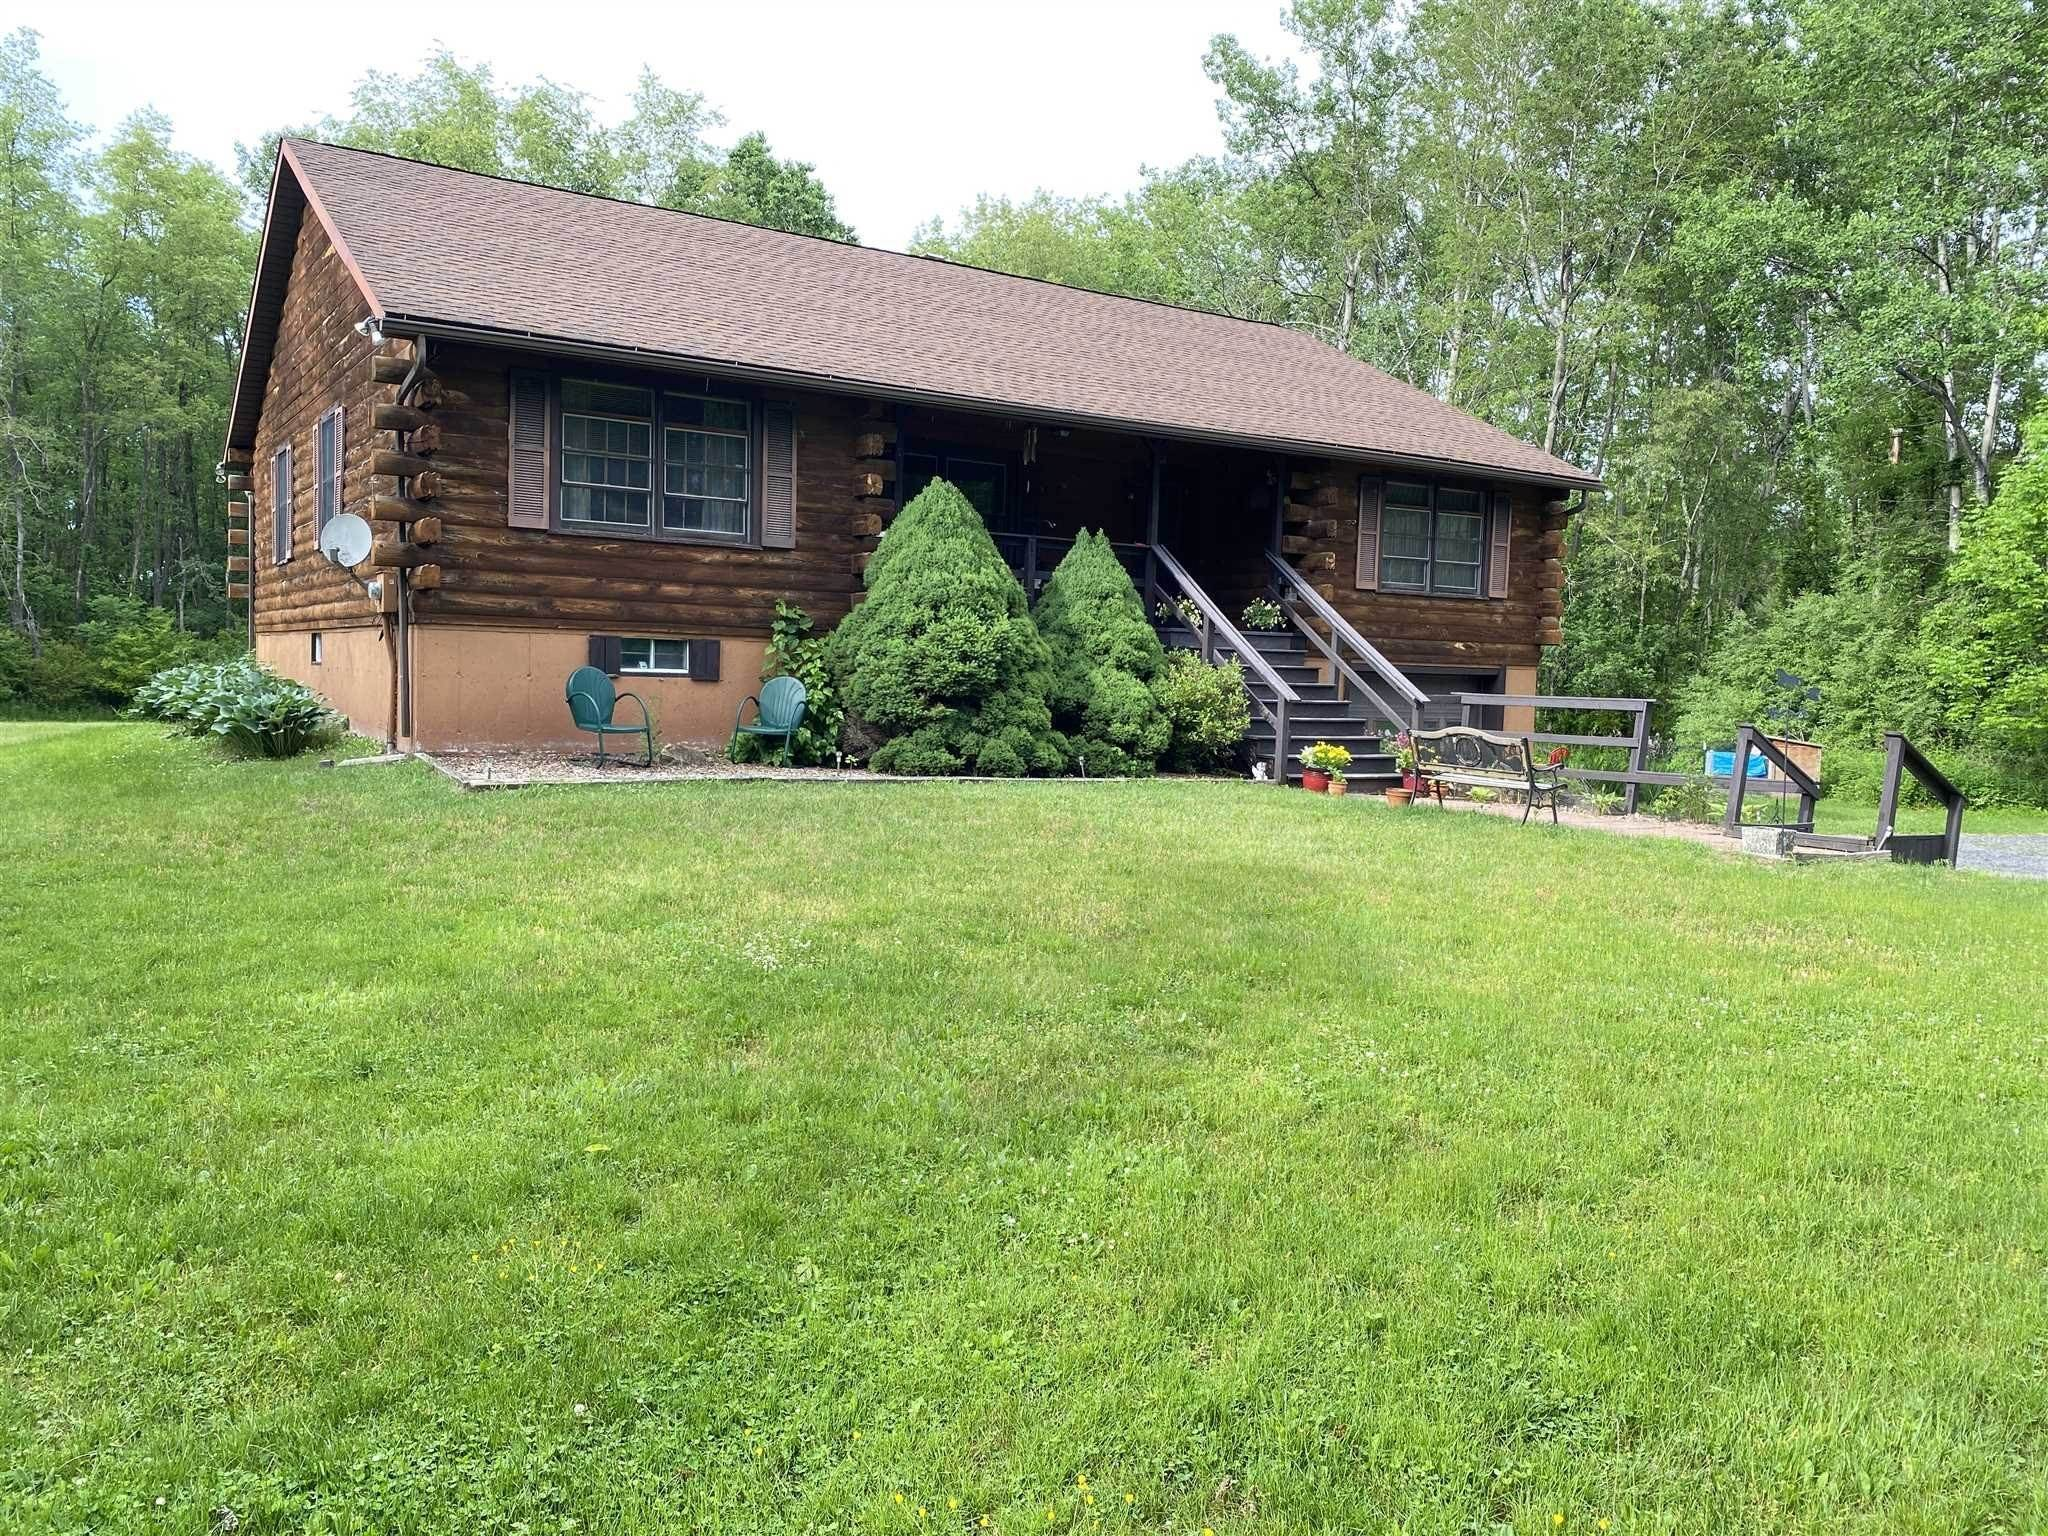 Single Family Homes for Sale at 3459 ROUTE 199 Pine Plains, New York 12567 United States